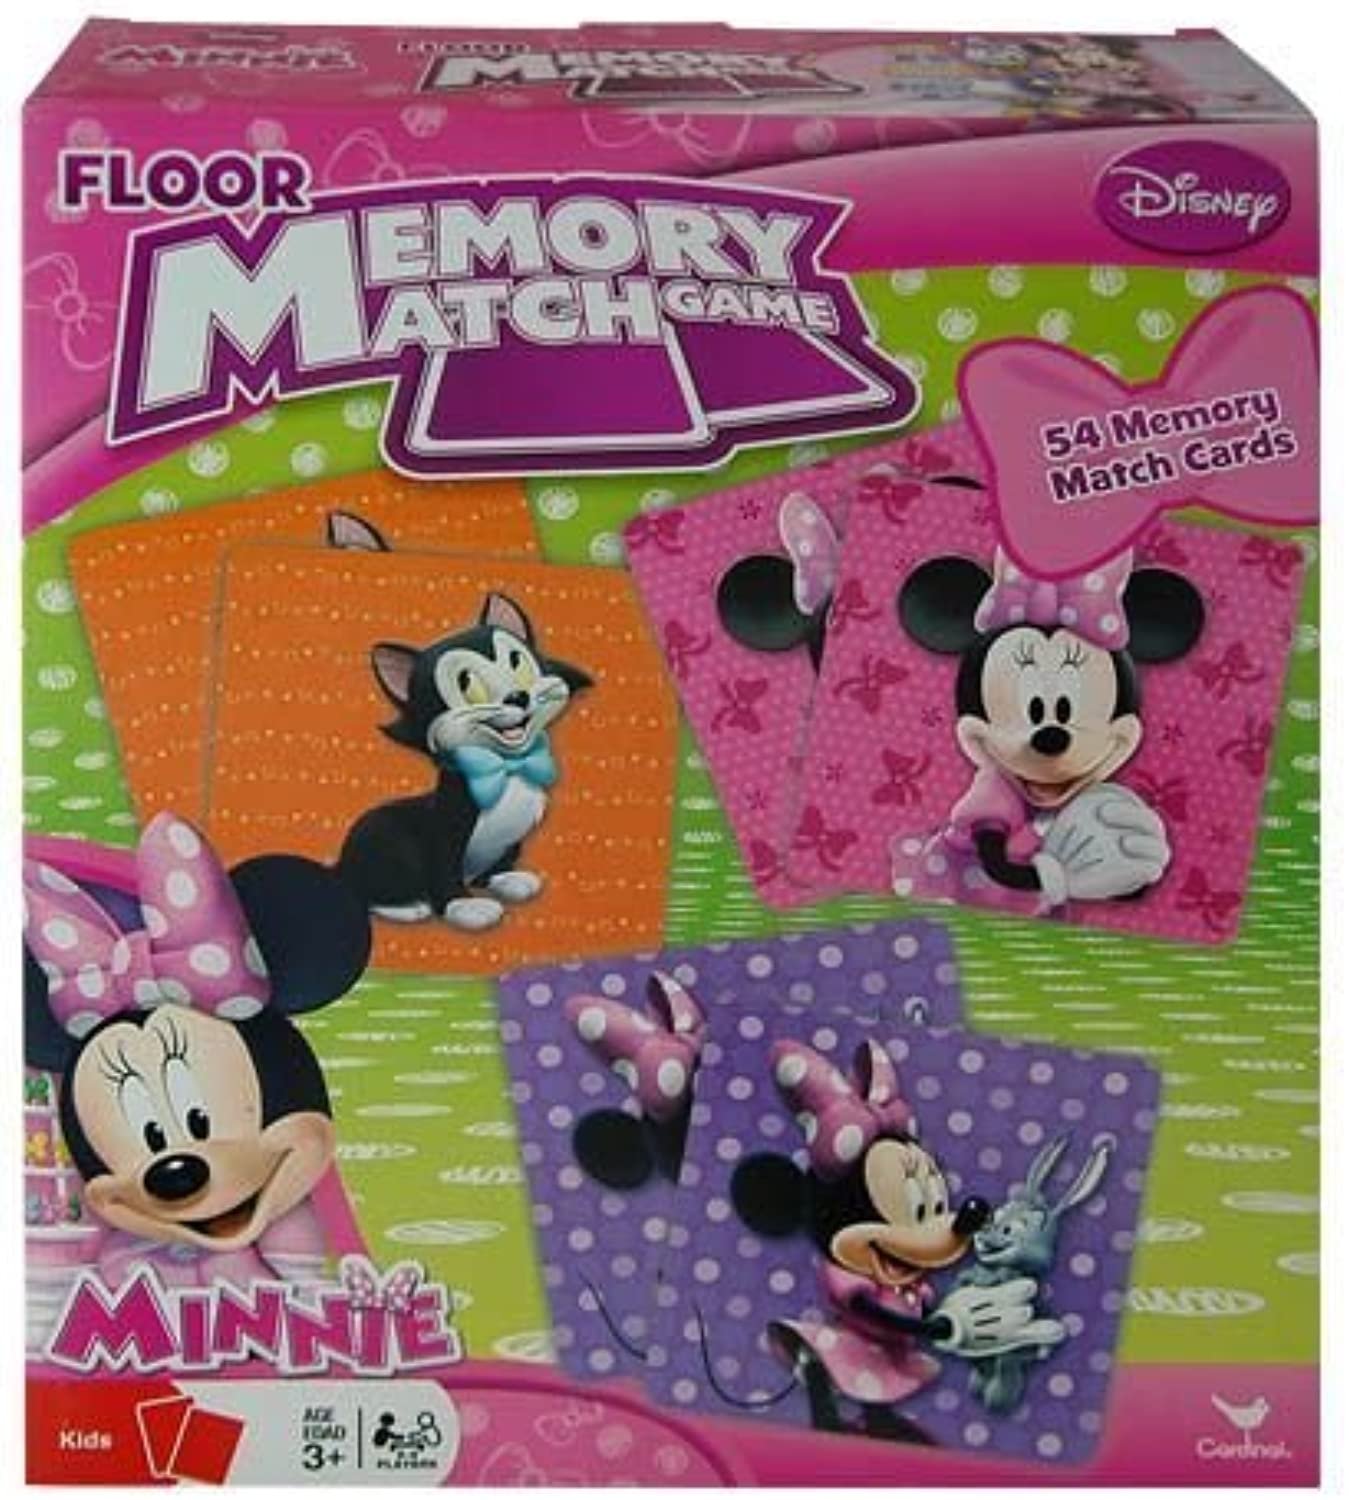 Minnie Mouse Bowtique Floor Memory Match Game by Cardinal